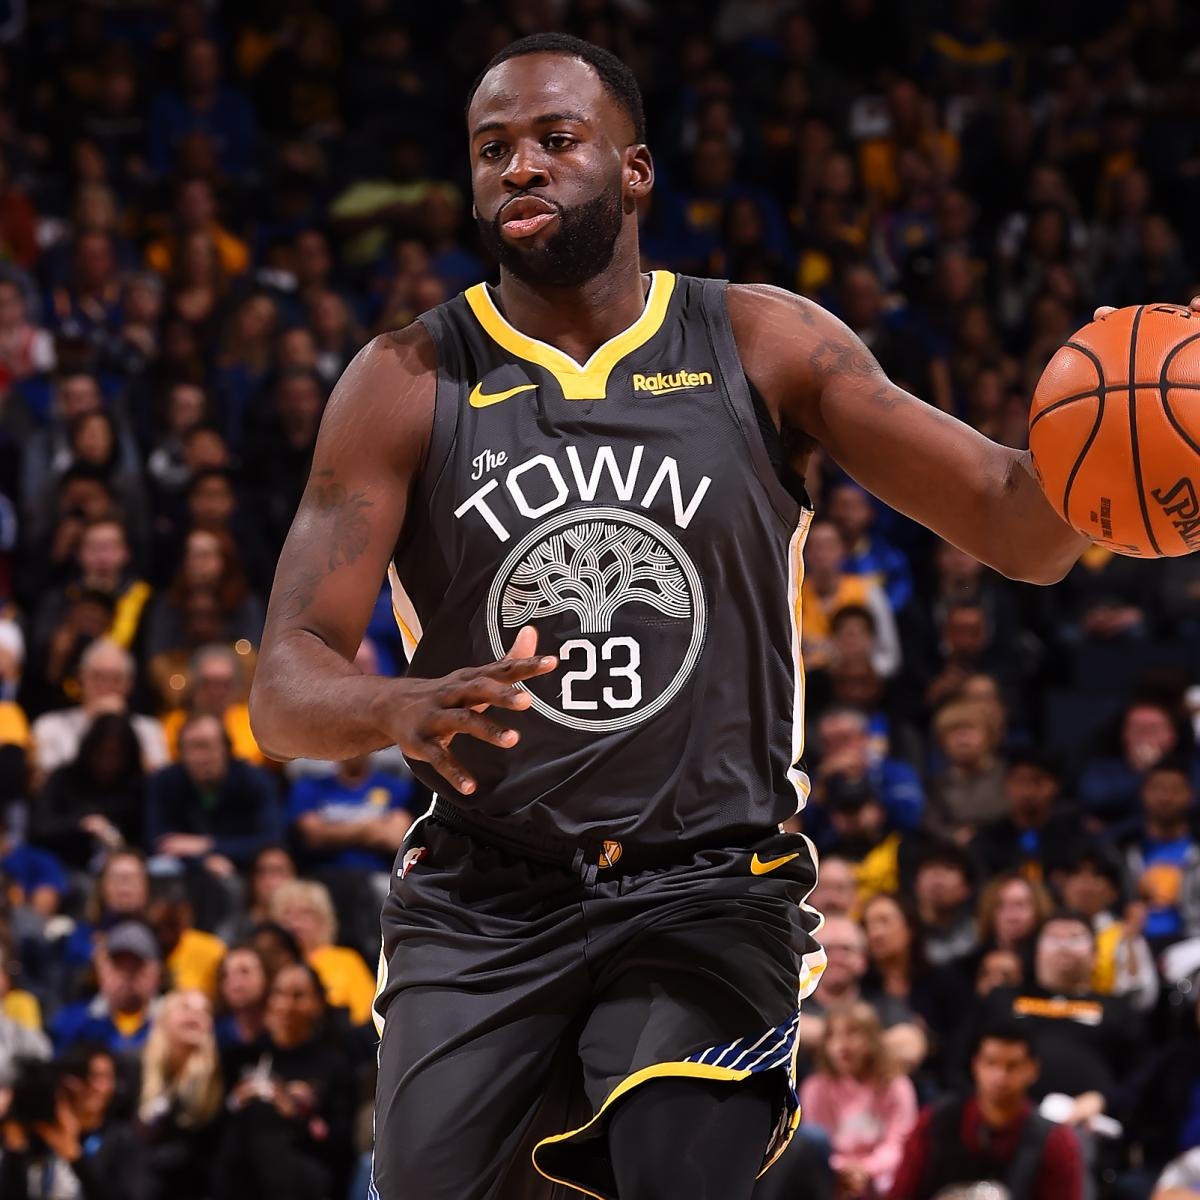 Rockets Vs Warriors Head To Head: Draymond Green Ruled Out Vs. Rockets With Ankle Injury